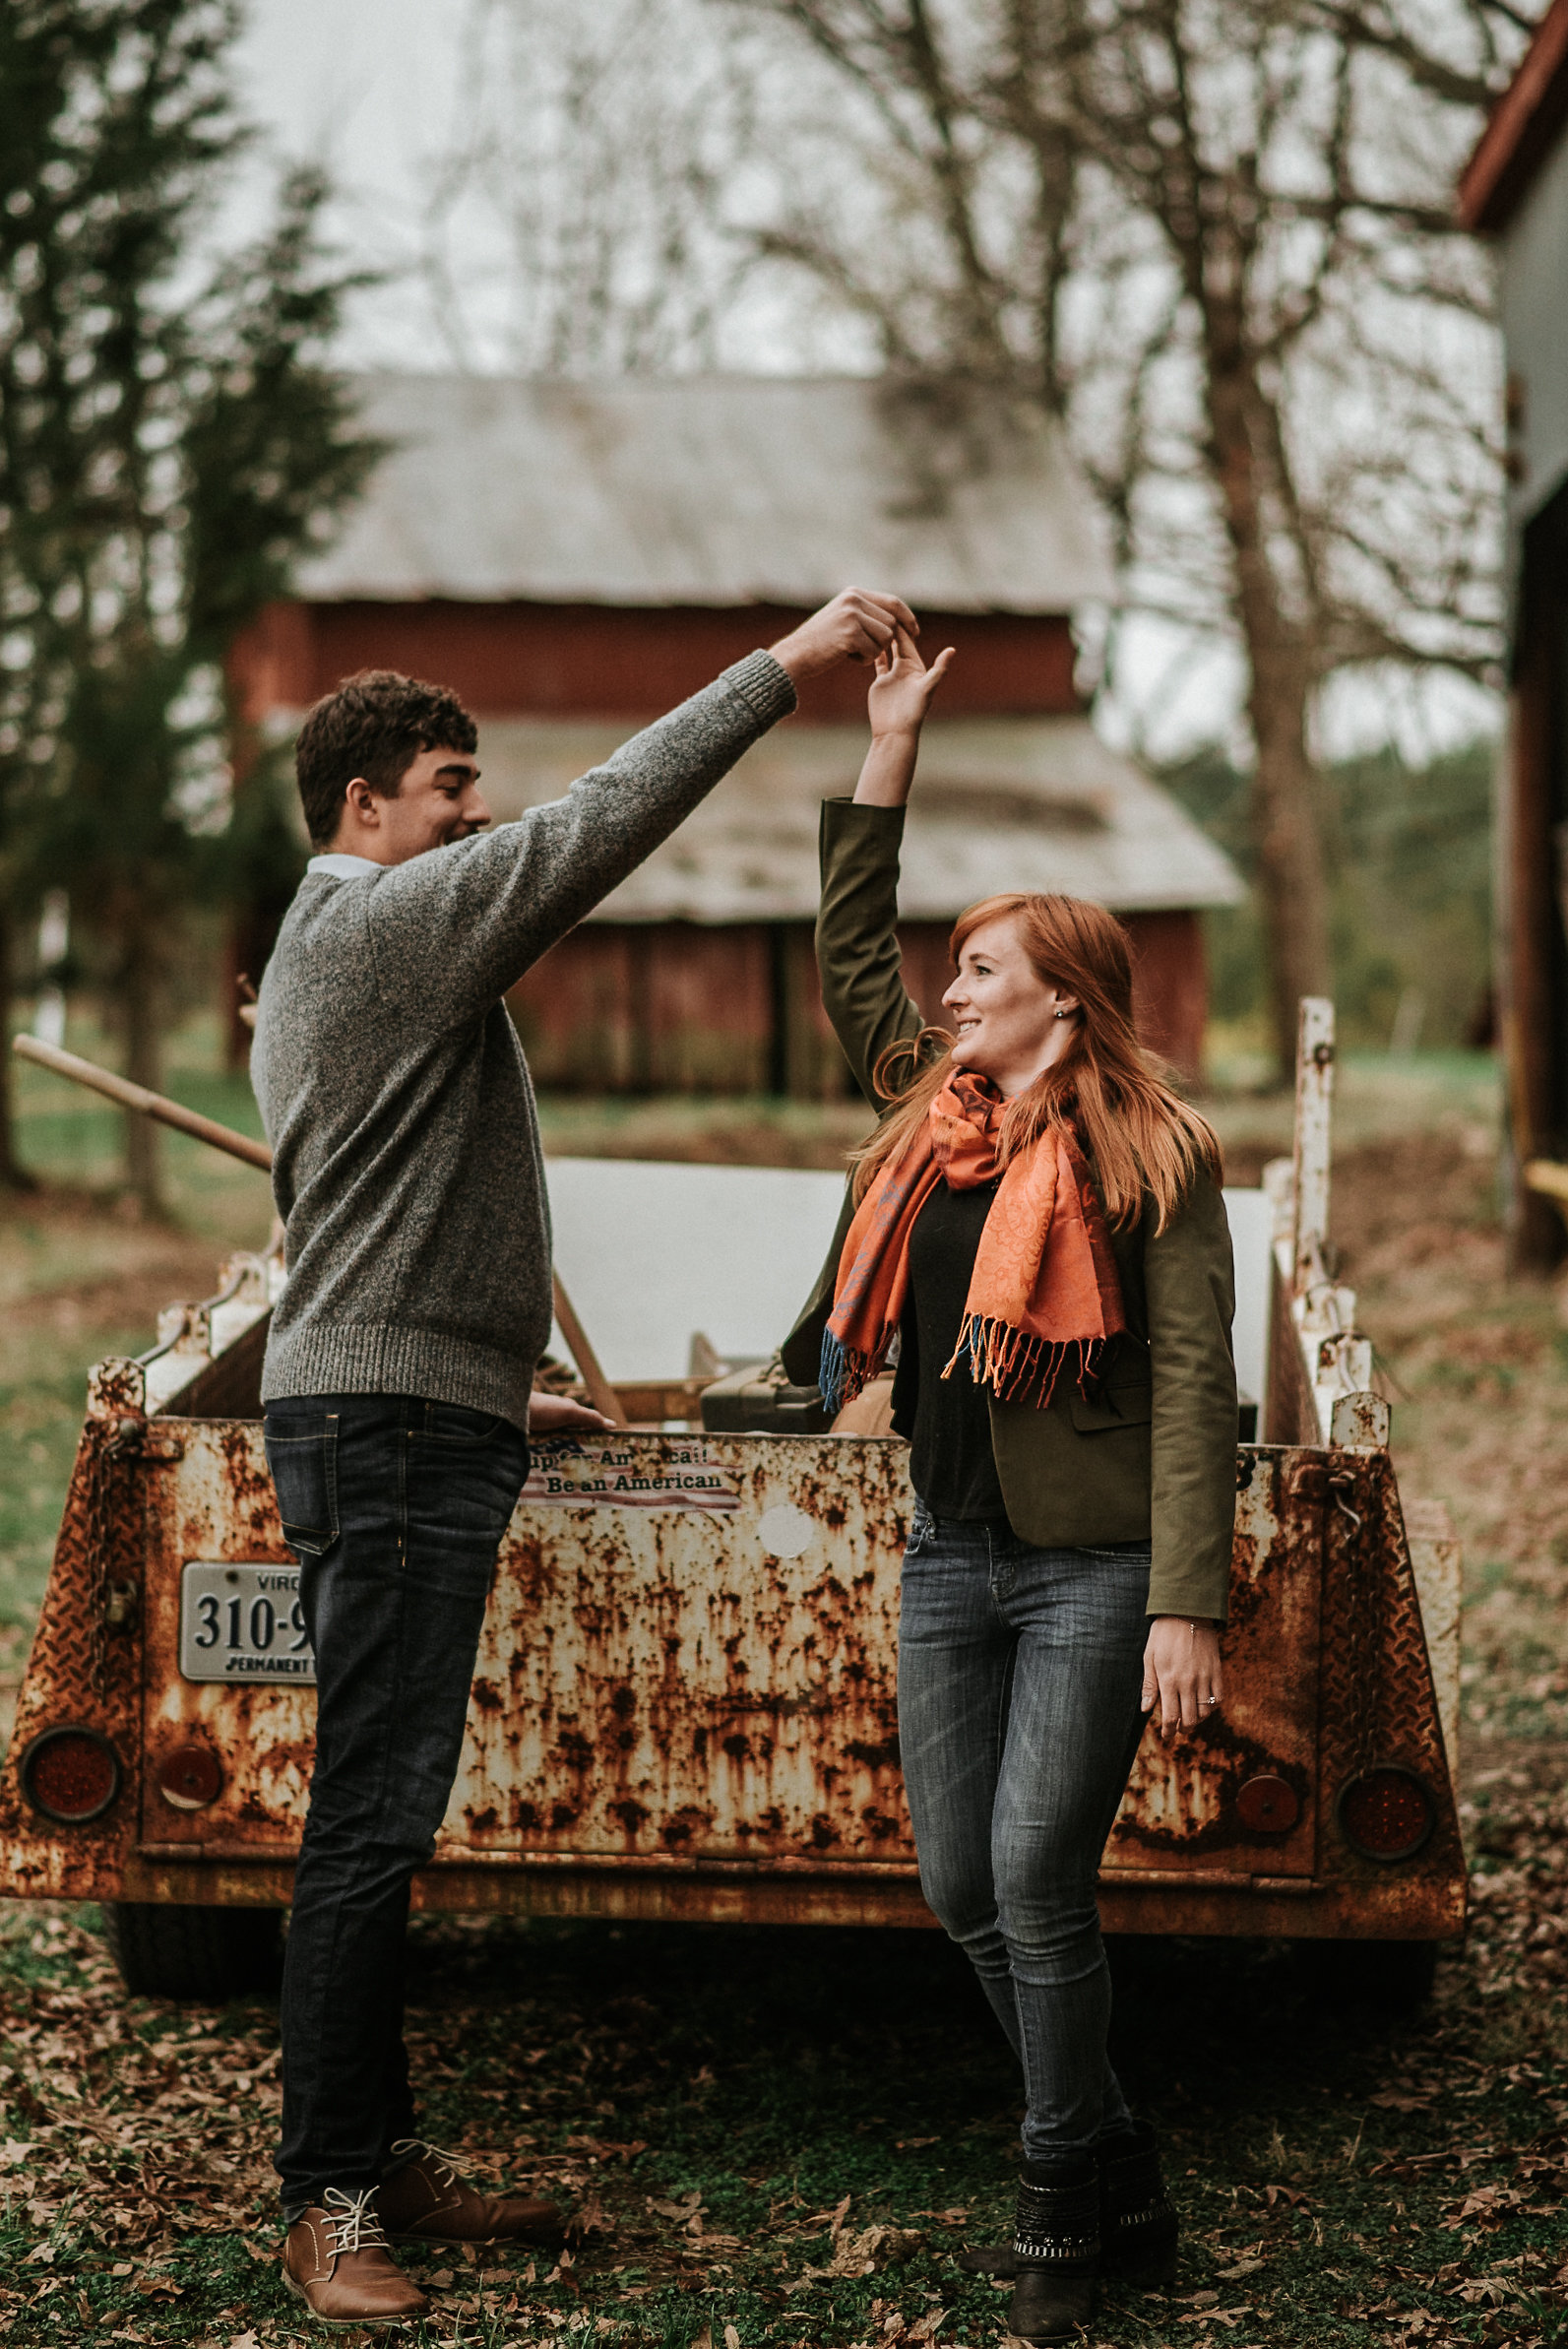 Couple dancing in front of old truck